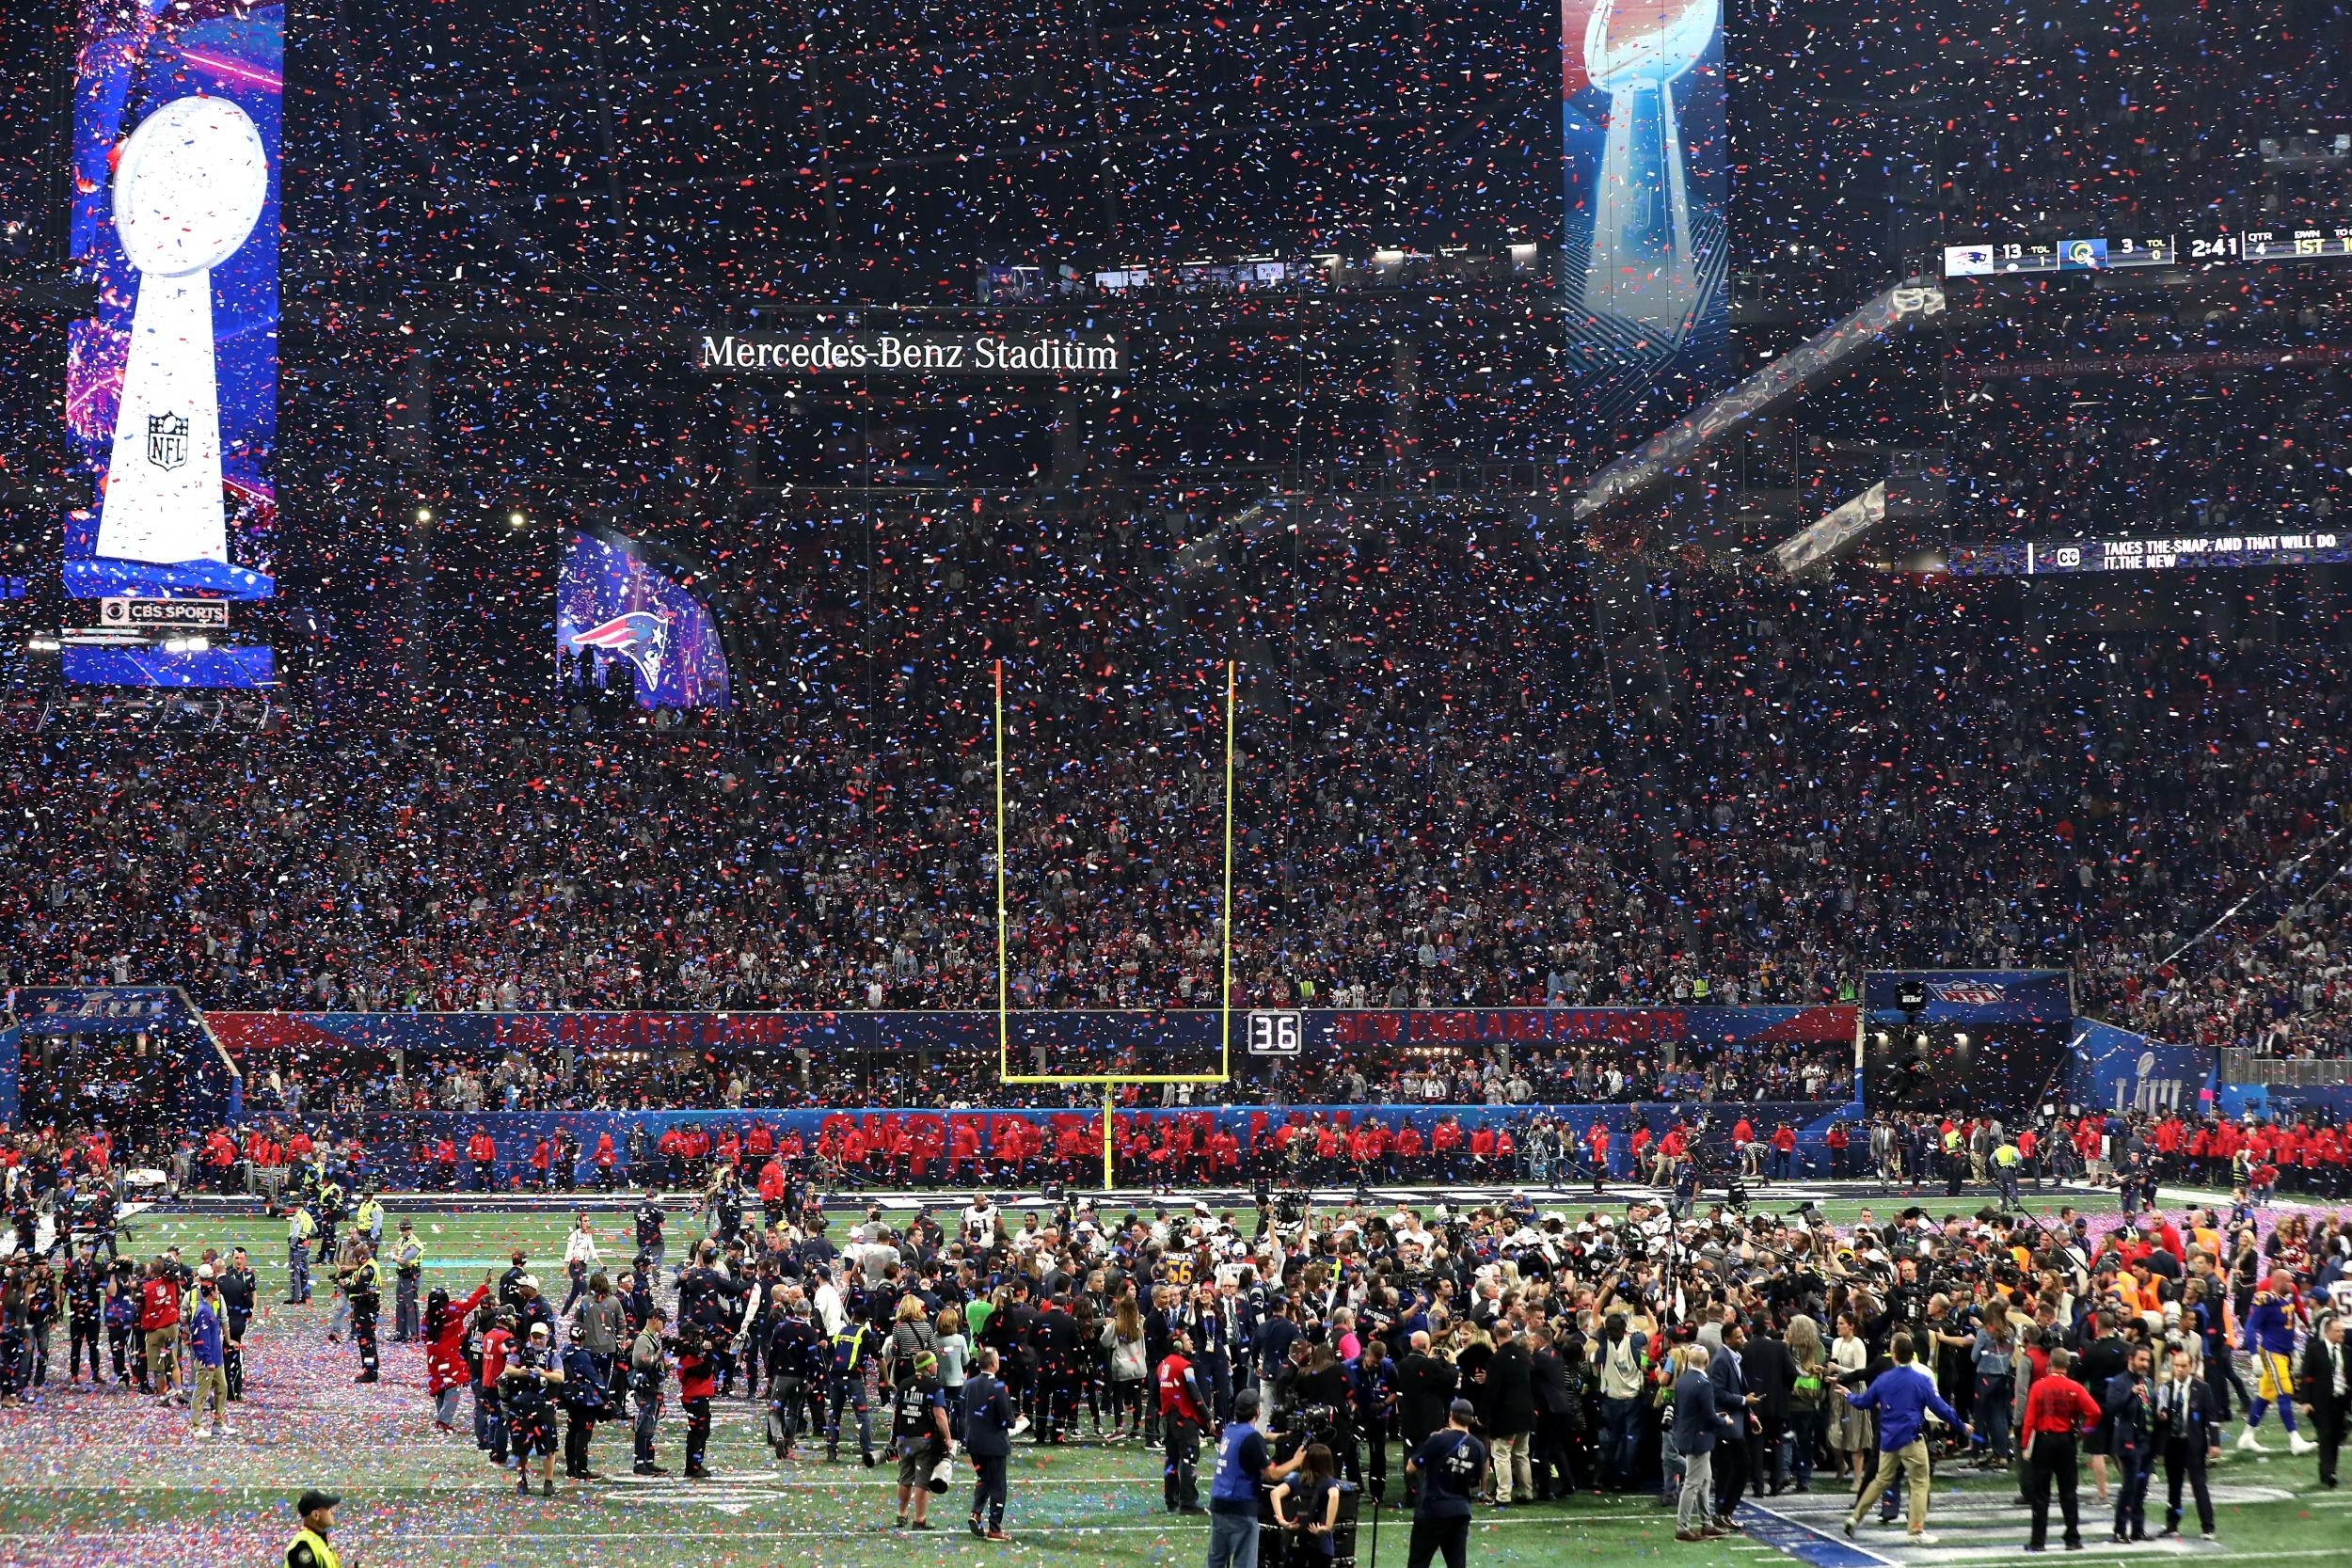 Super Bowl 2019 Attendance: La Rams Vs New England Patriots with regard to Super Bowl Attendance 2019